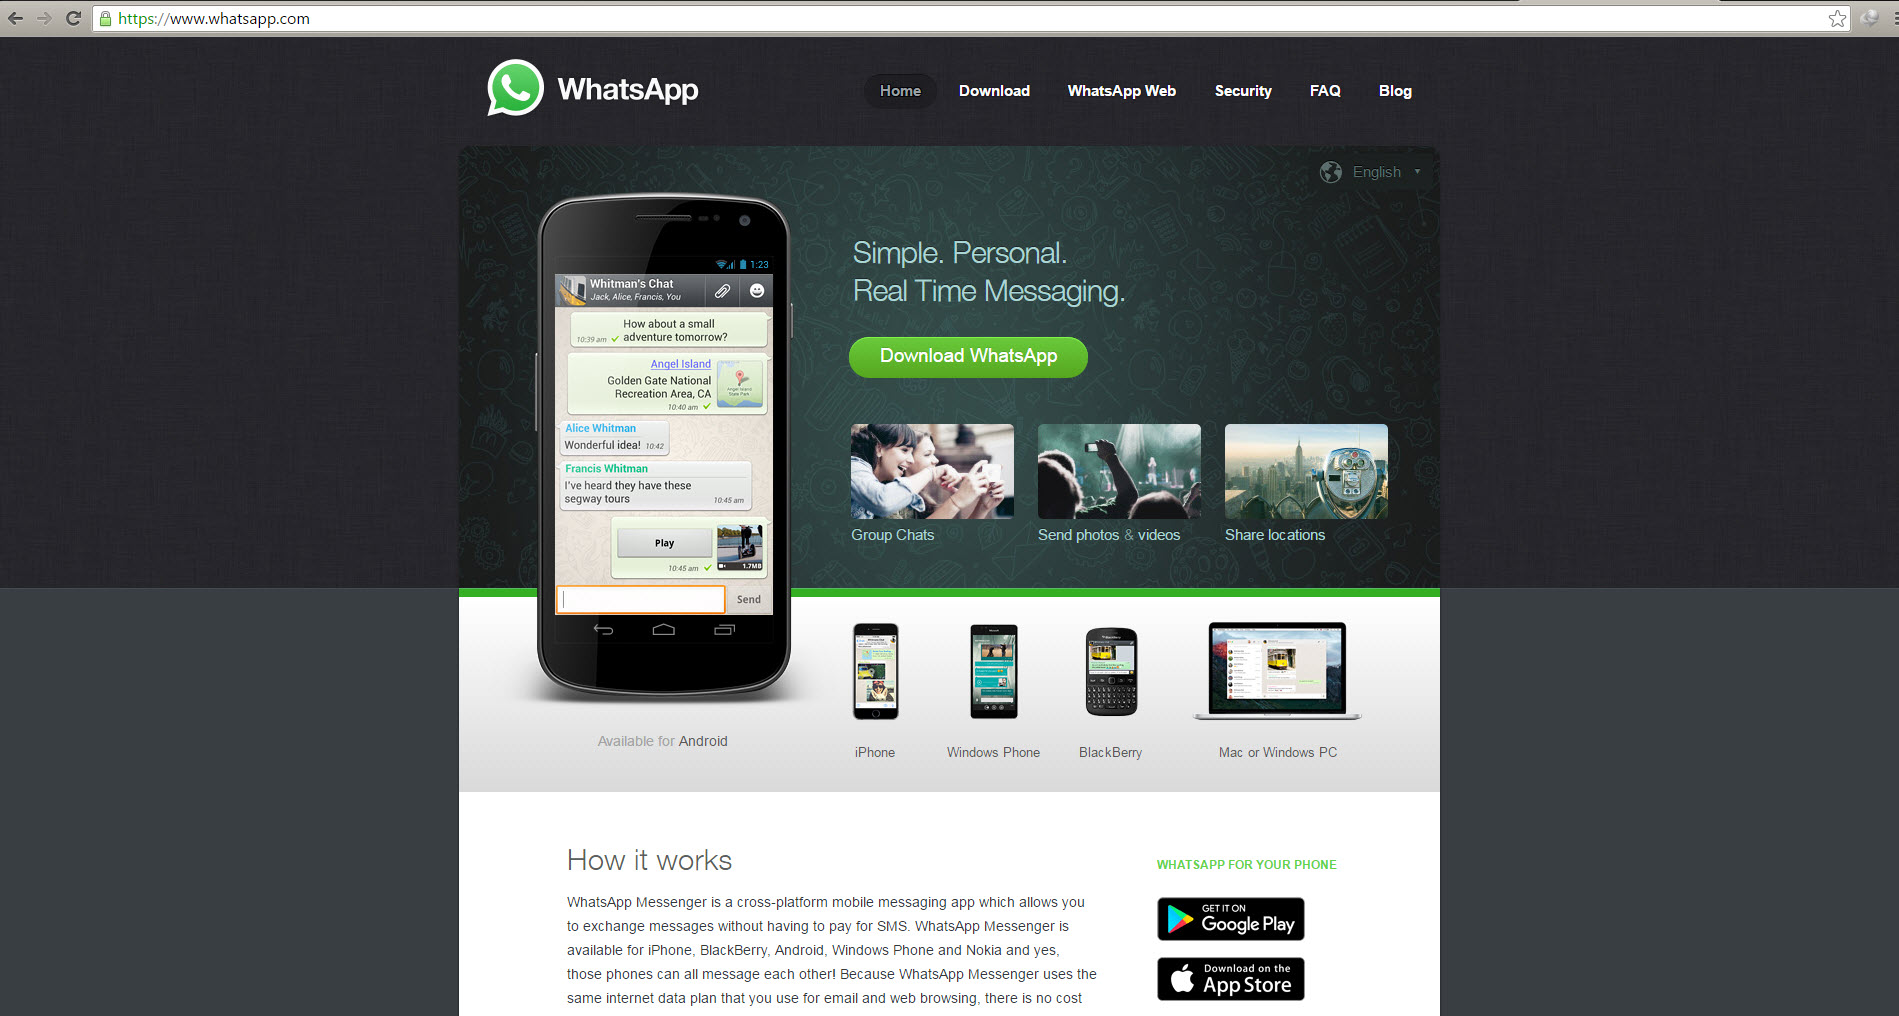 Navigate to official site of WhatsApp